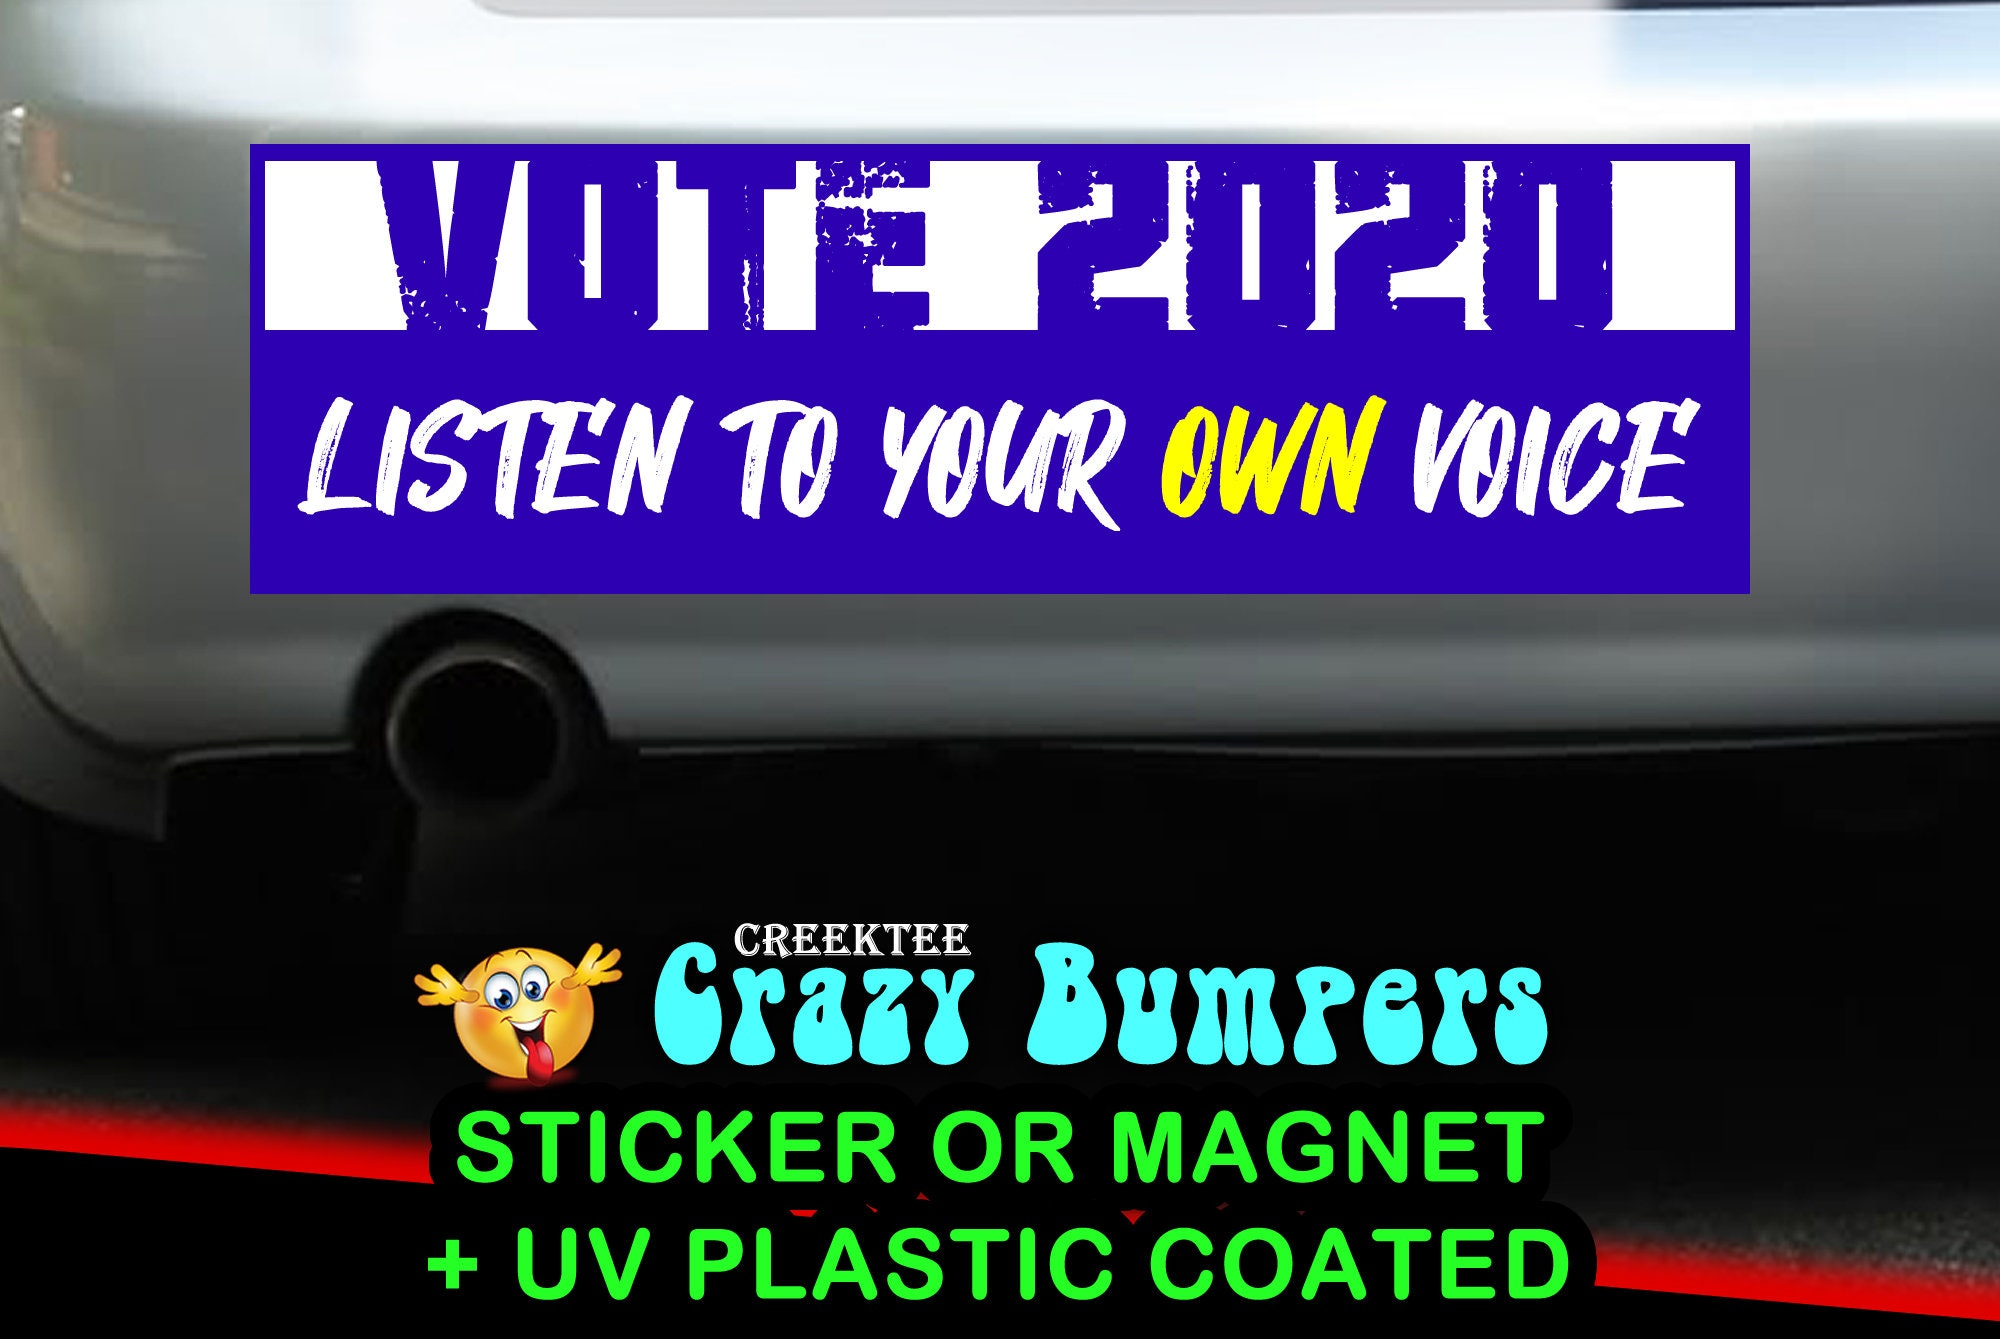 CAD$31.79 - 4X Vote 2020 Listen To Your Own Voice 10 x 3 Bumper Sticker or Magnetic Bumper Sticker Available